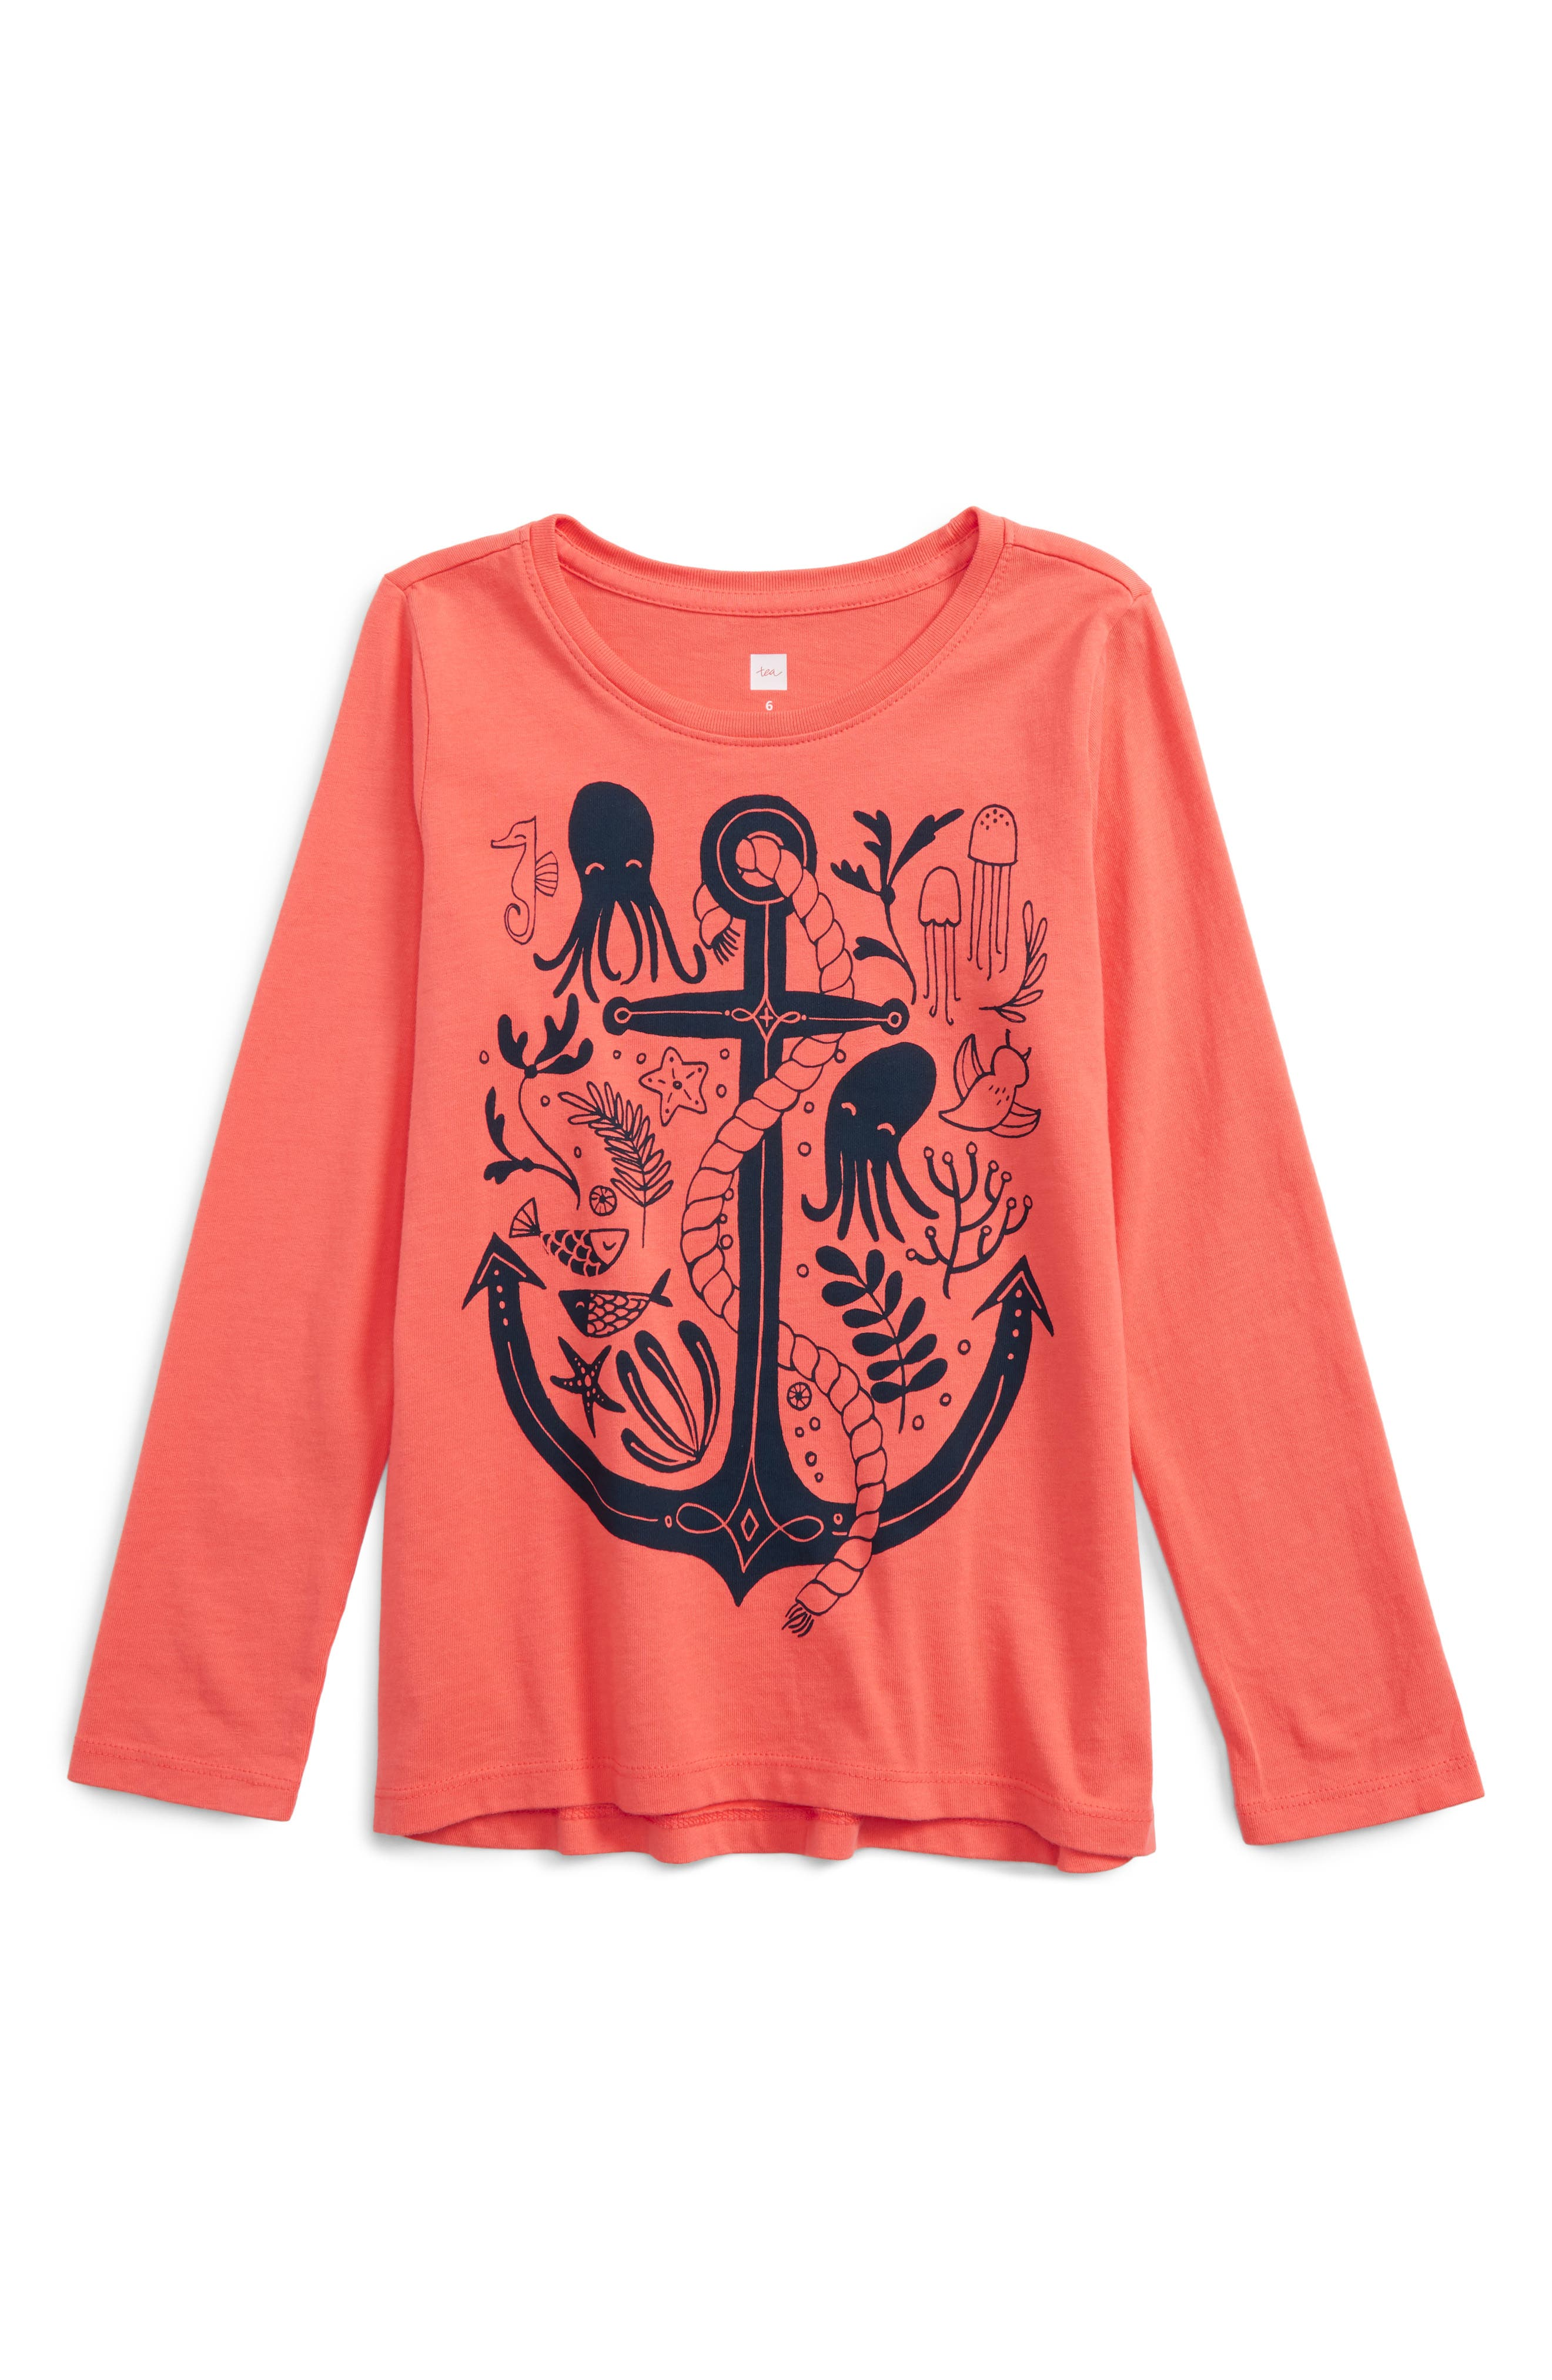 Tea Collection River Polly Graphic Tee (Toddler Girls, Little Girls & Big Girls)